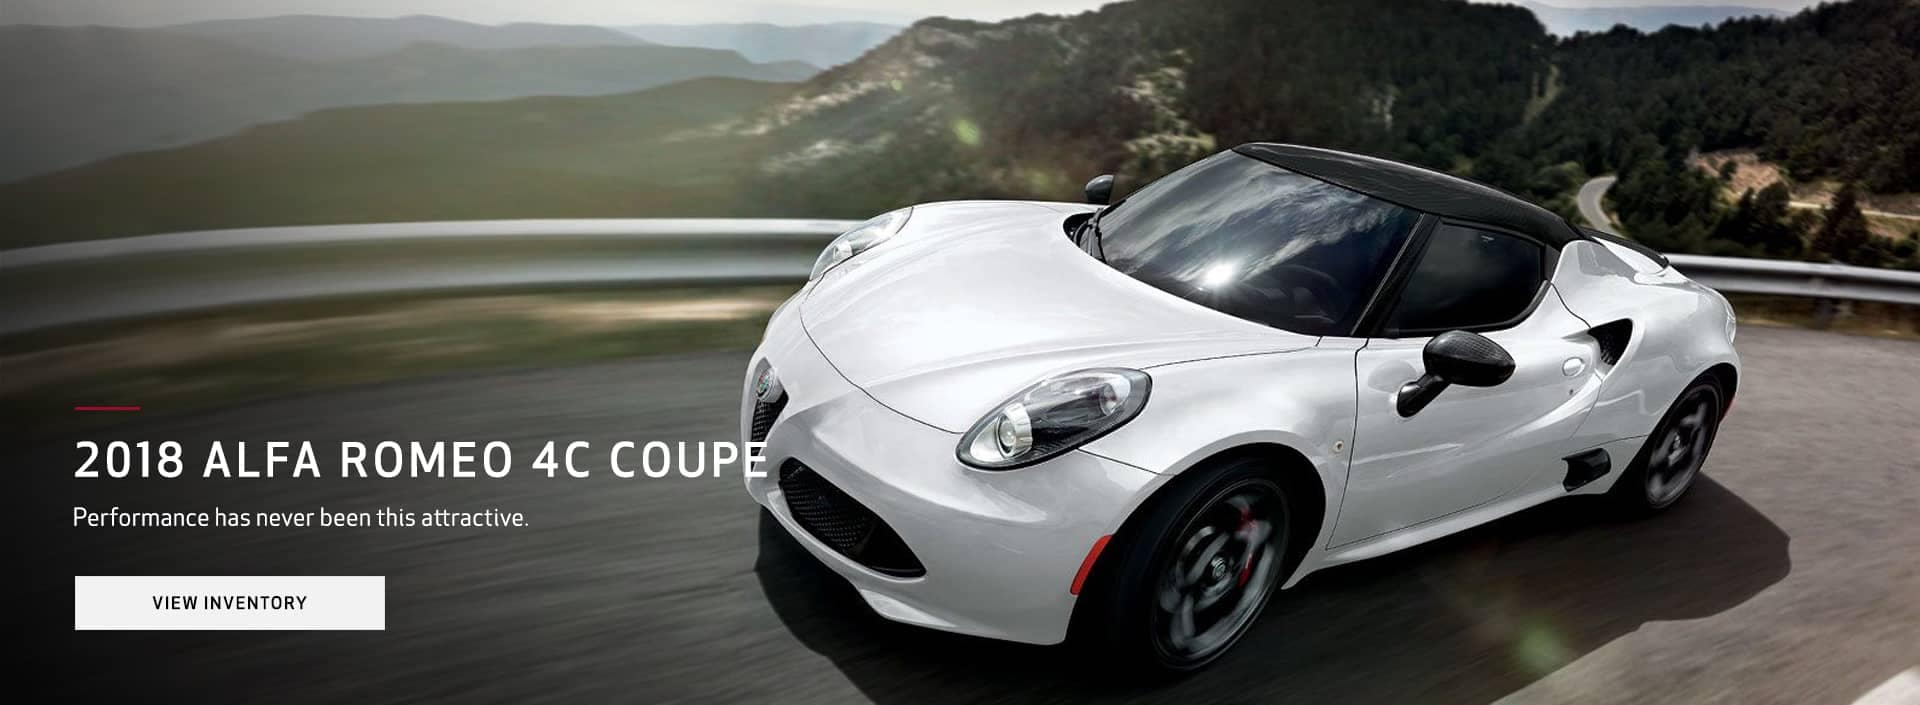 2018AlfaRomeo4cCoupe